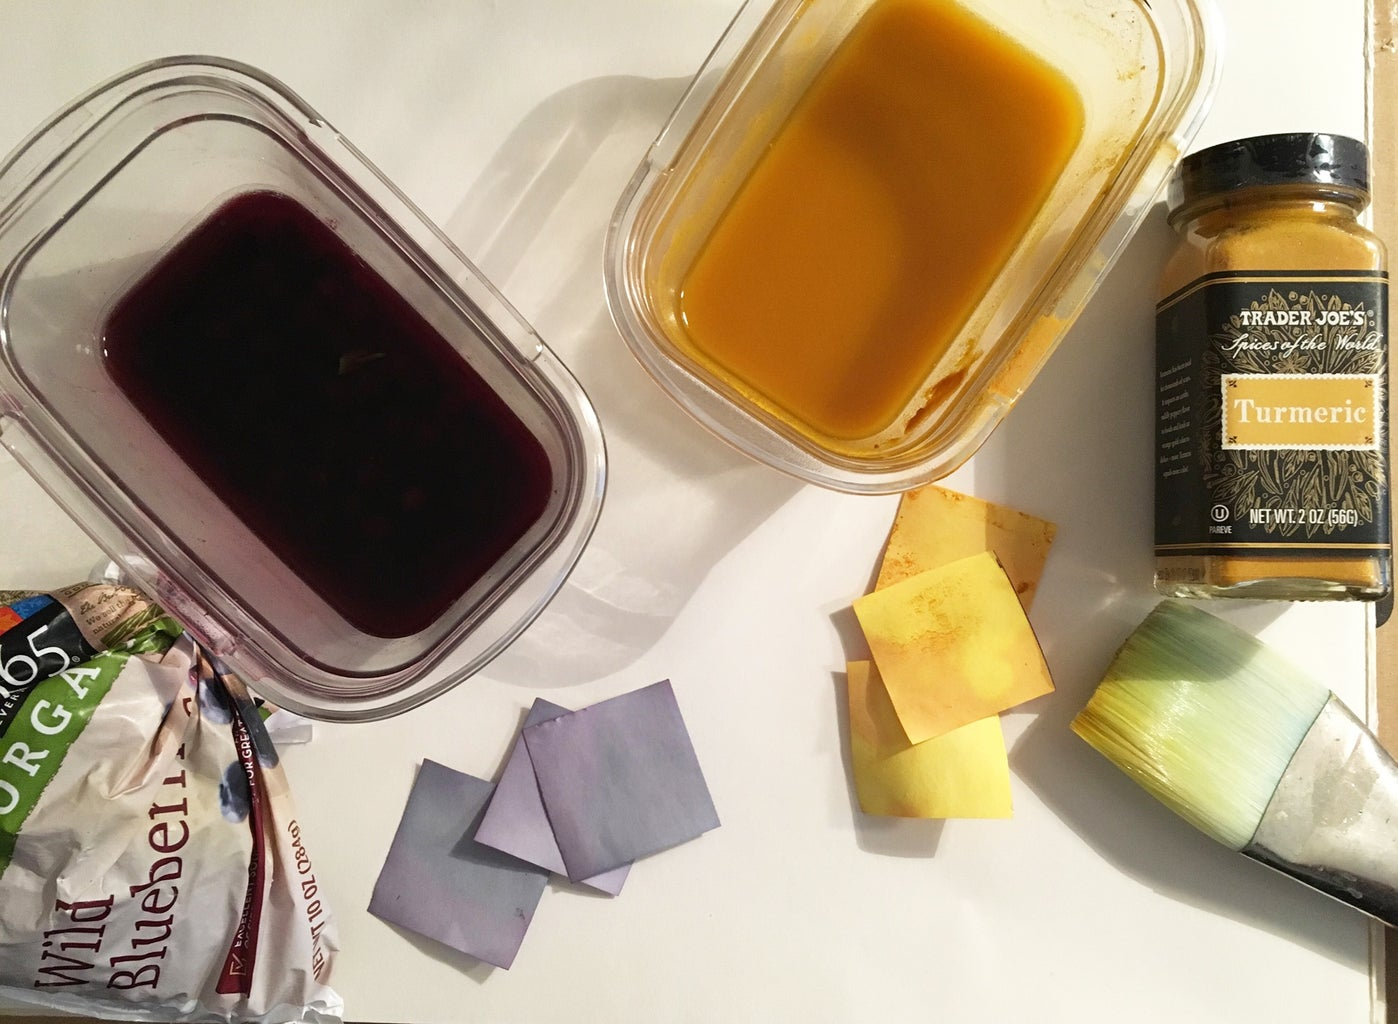 Make the Natural Dye Patches